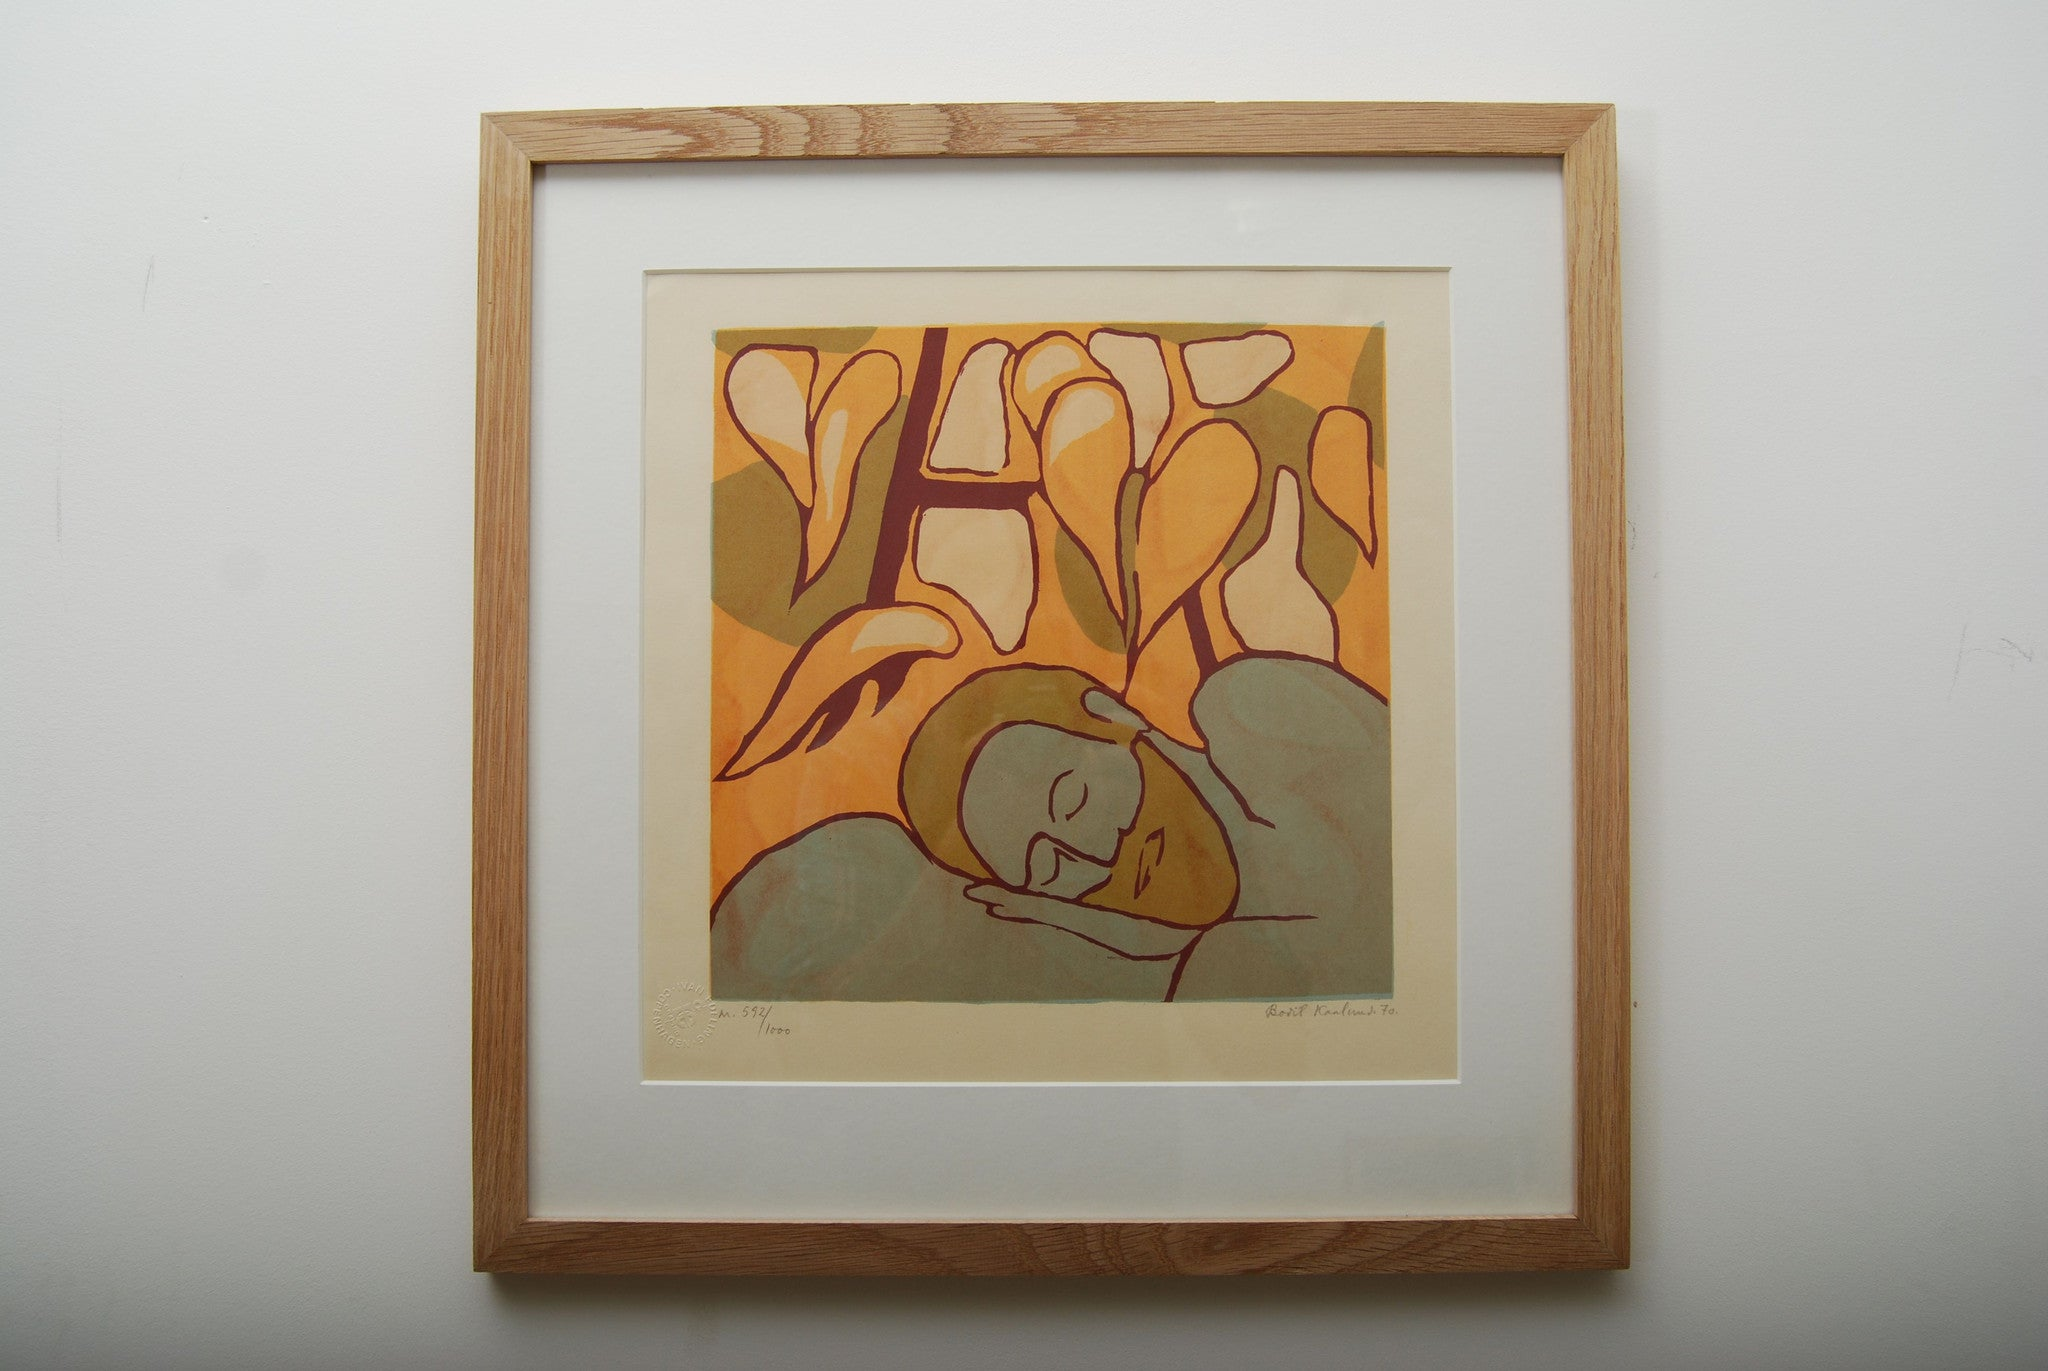 Framed lithographic print by Bodil Kaalund